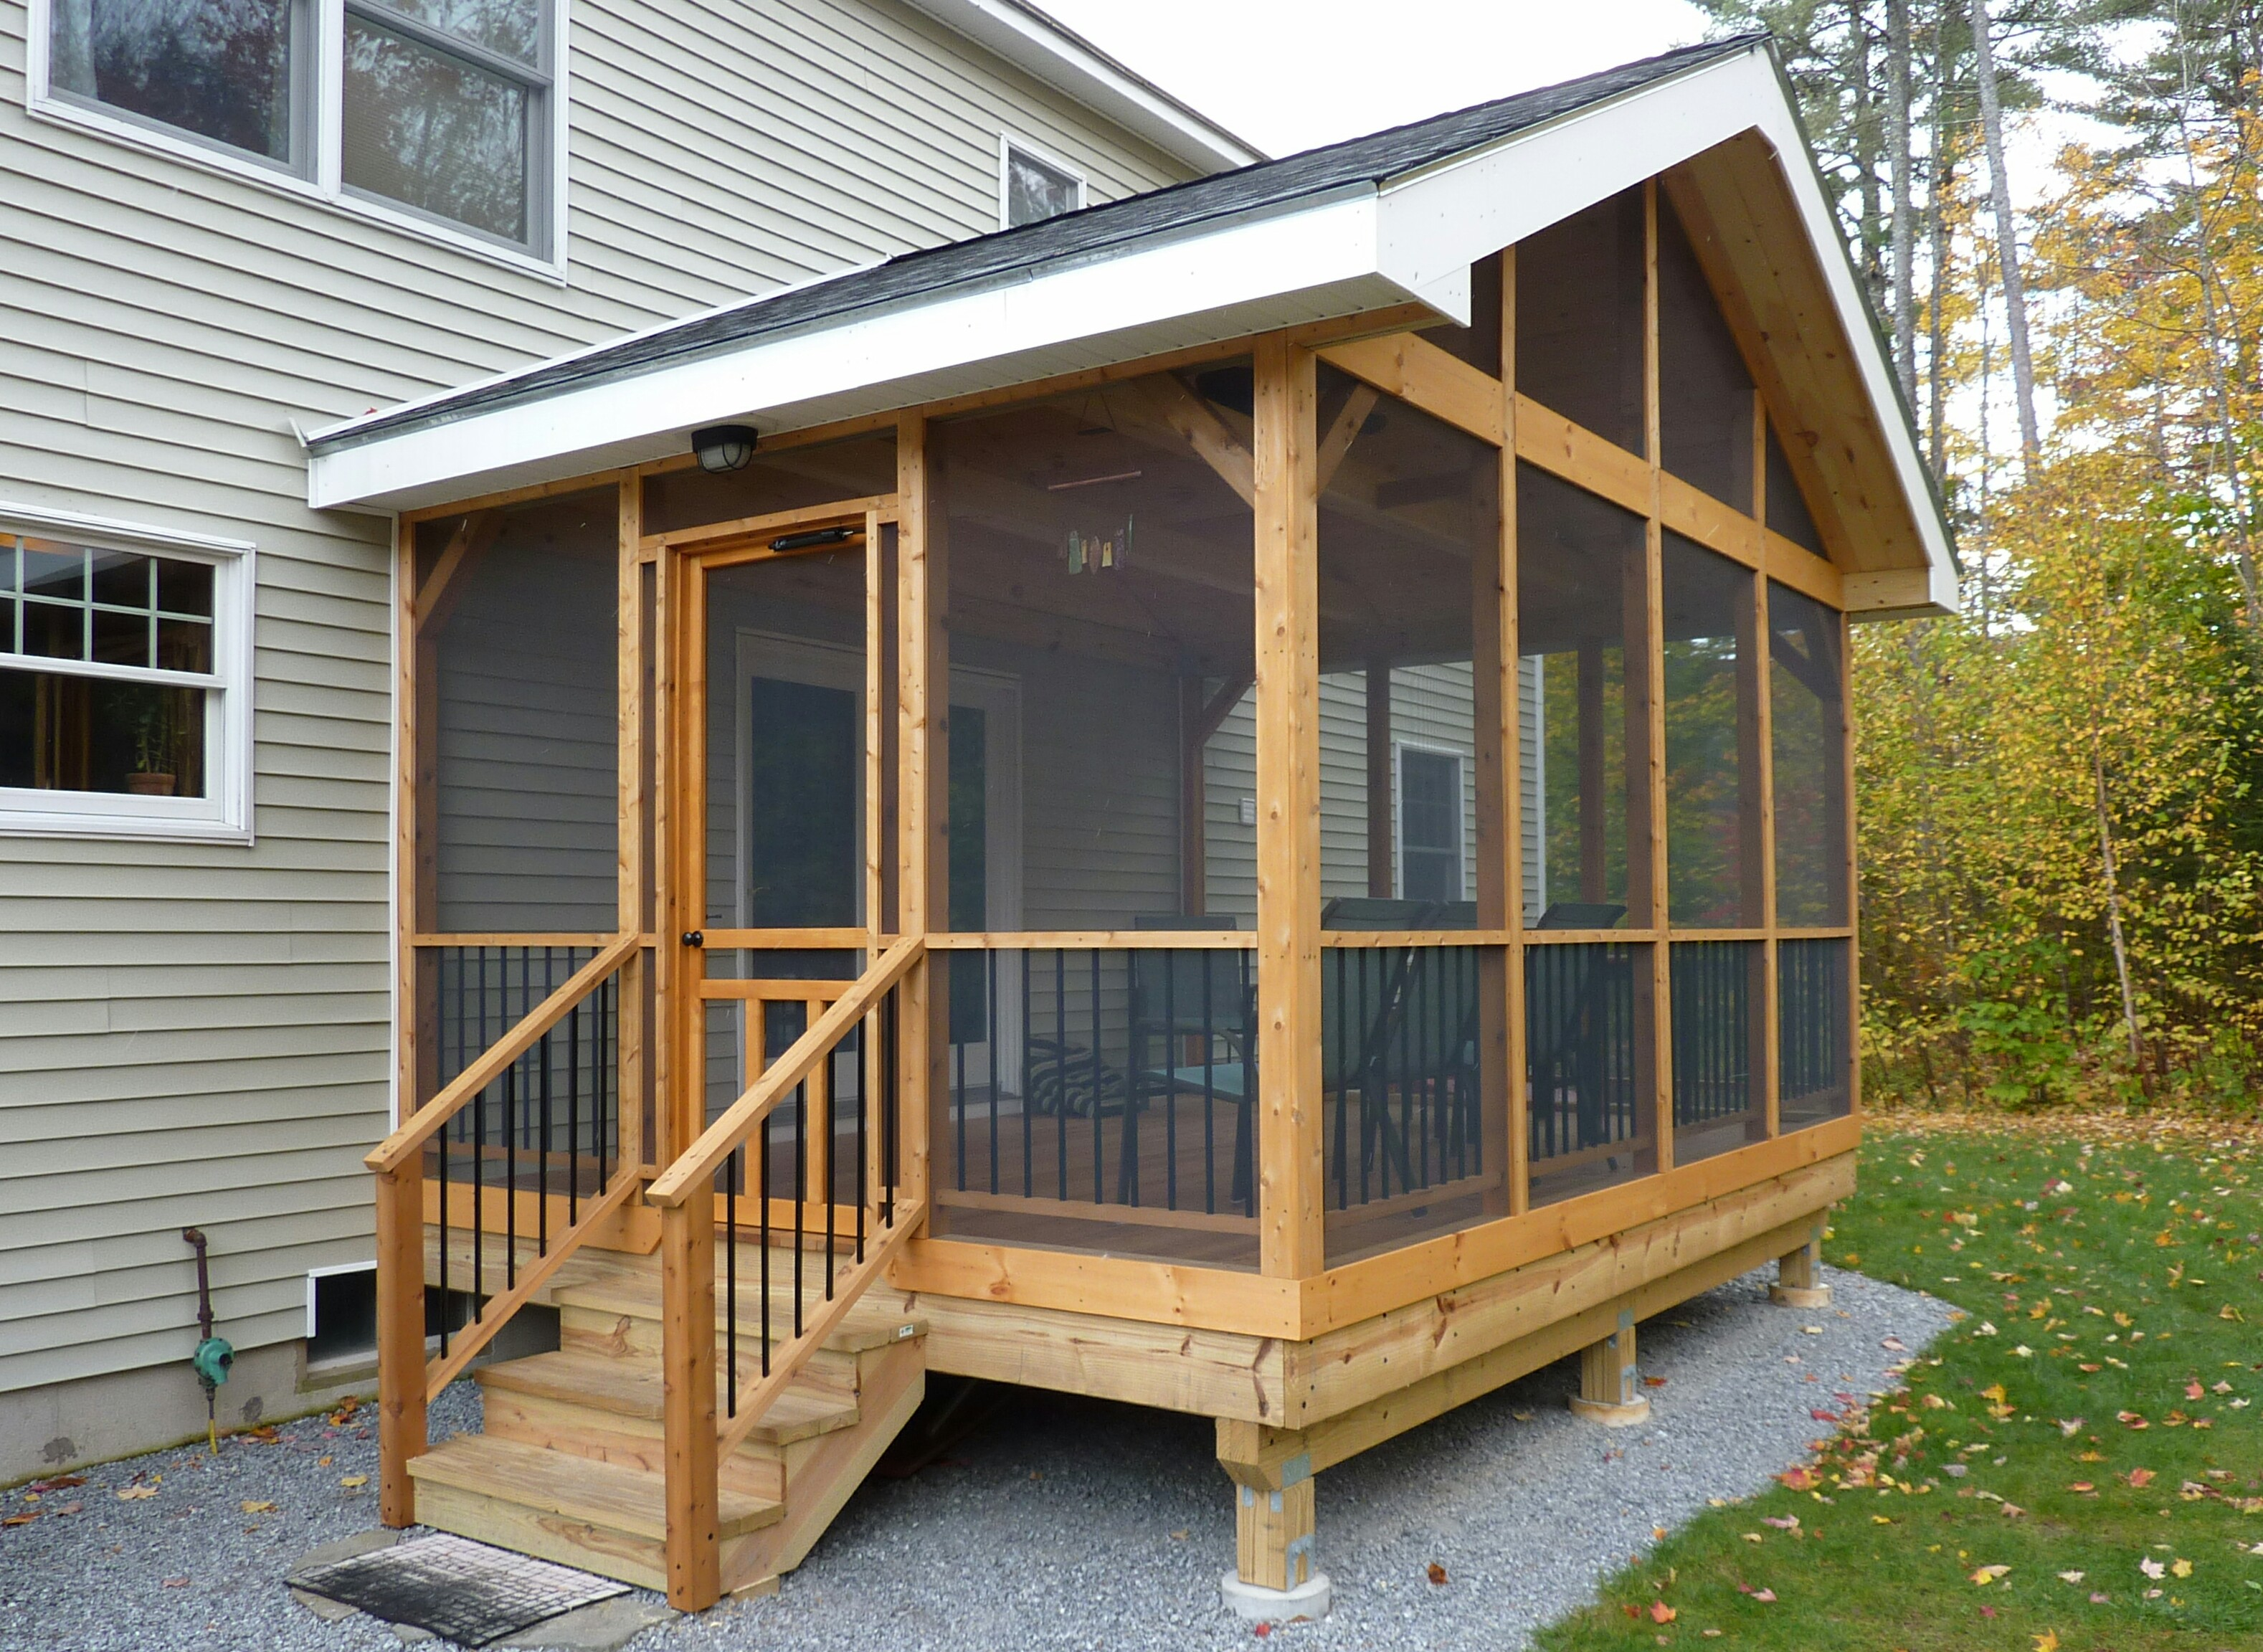 15 DIY Screened In PorchLearn how to screen in a porch